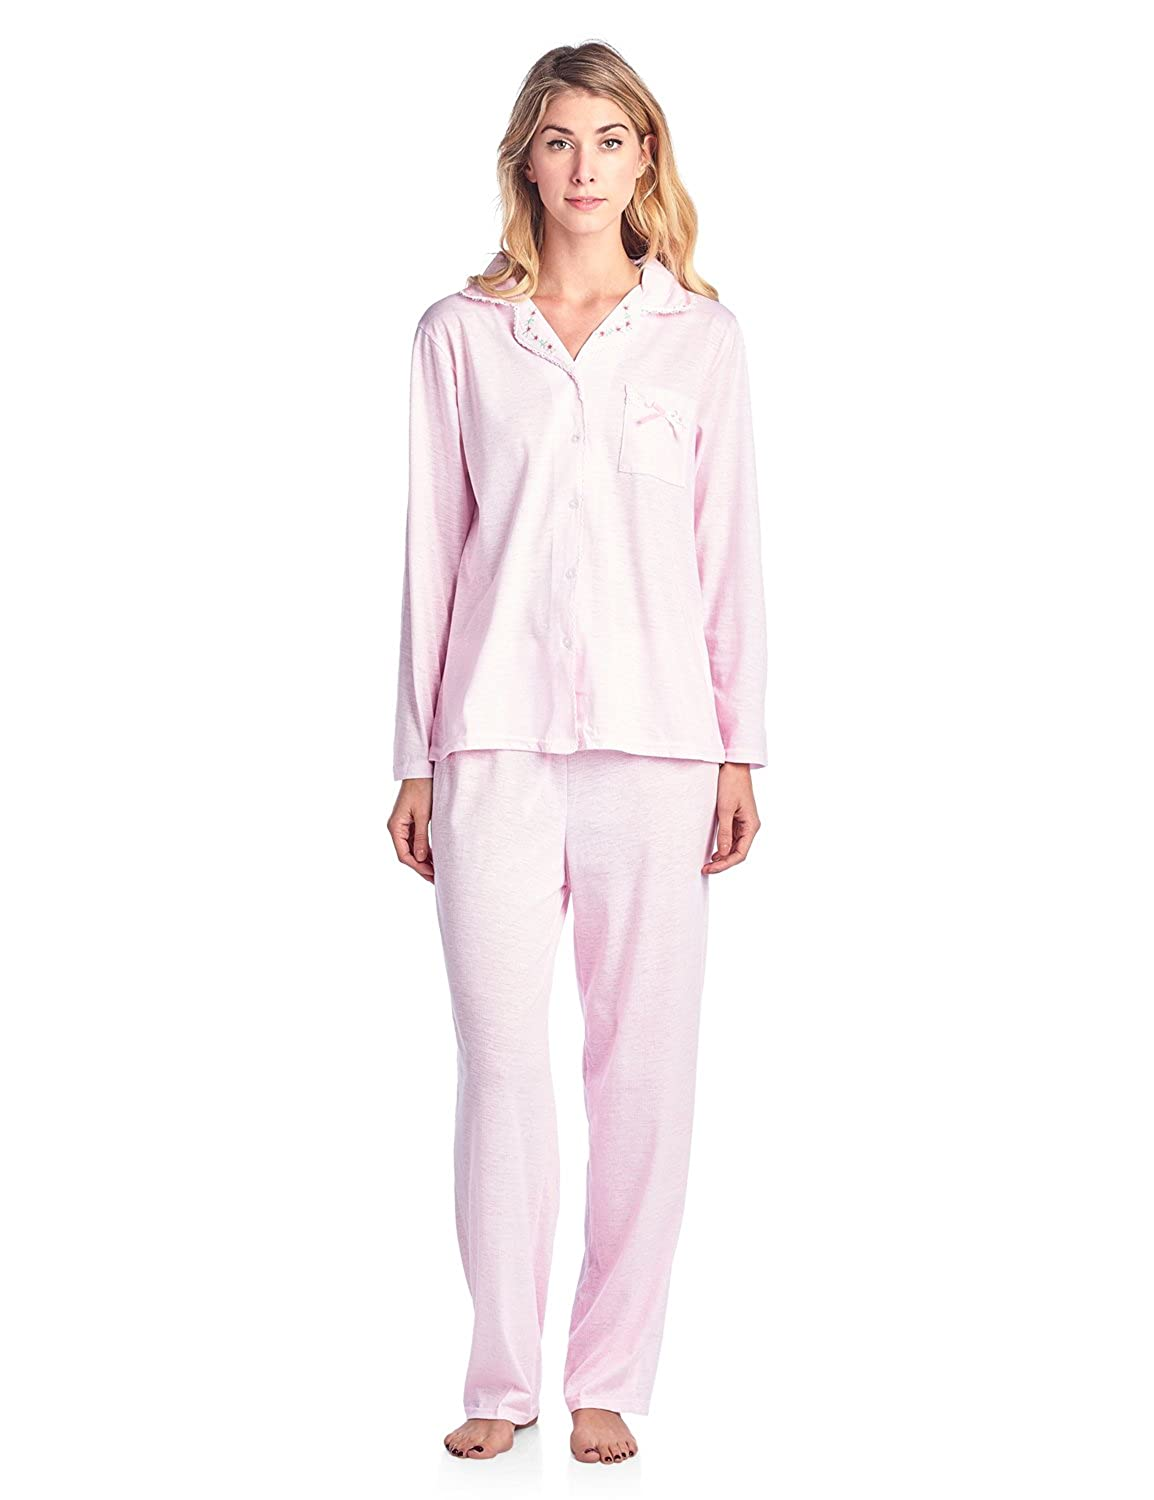 Casual Nights Women's Sleepwear Long Sleeve Floral Pajama Set